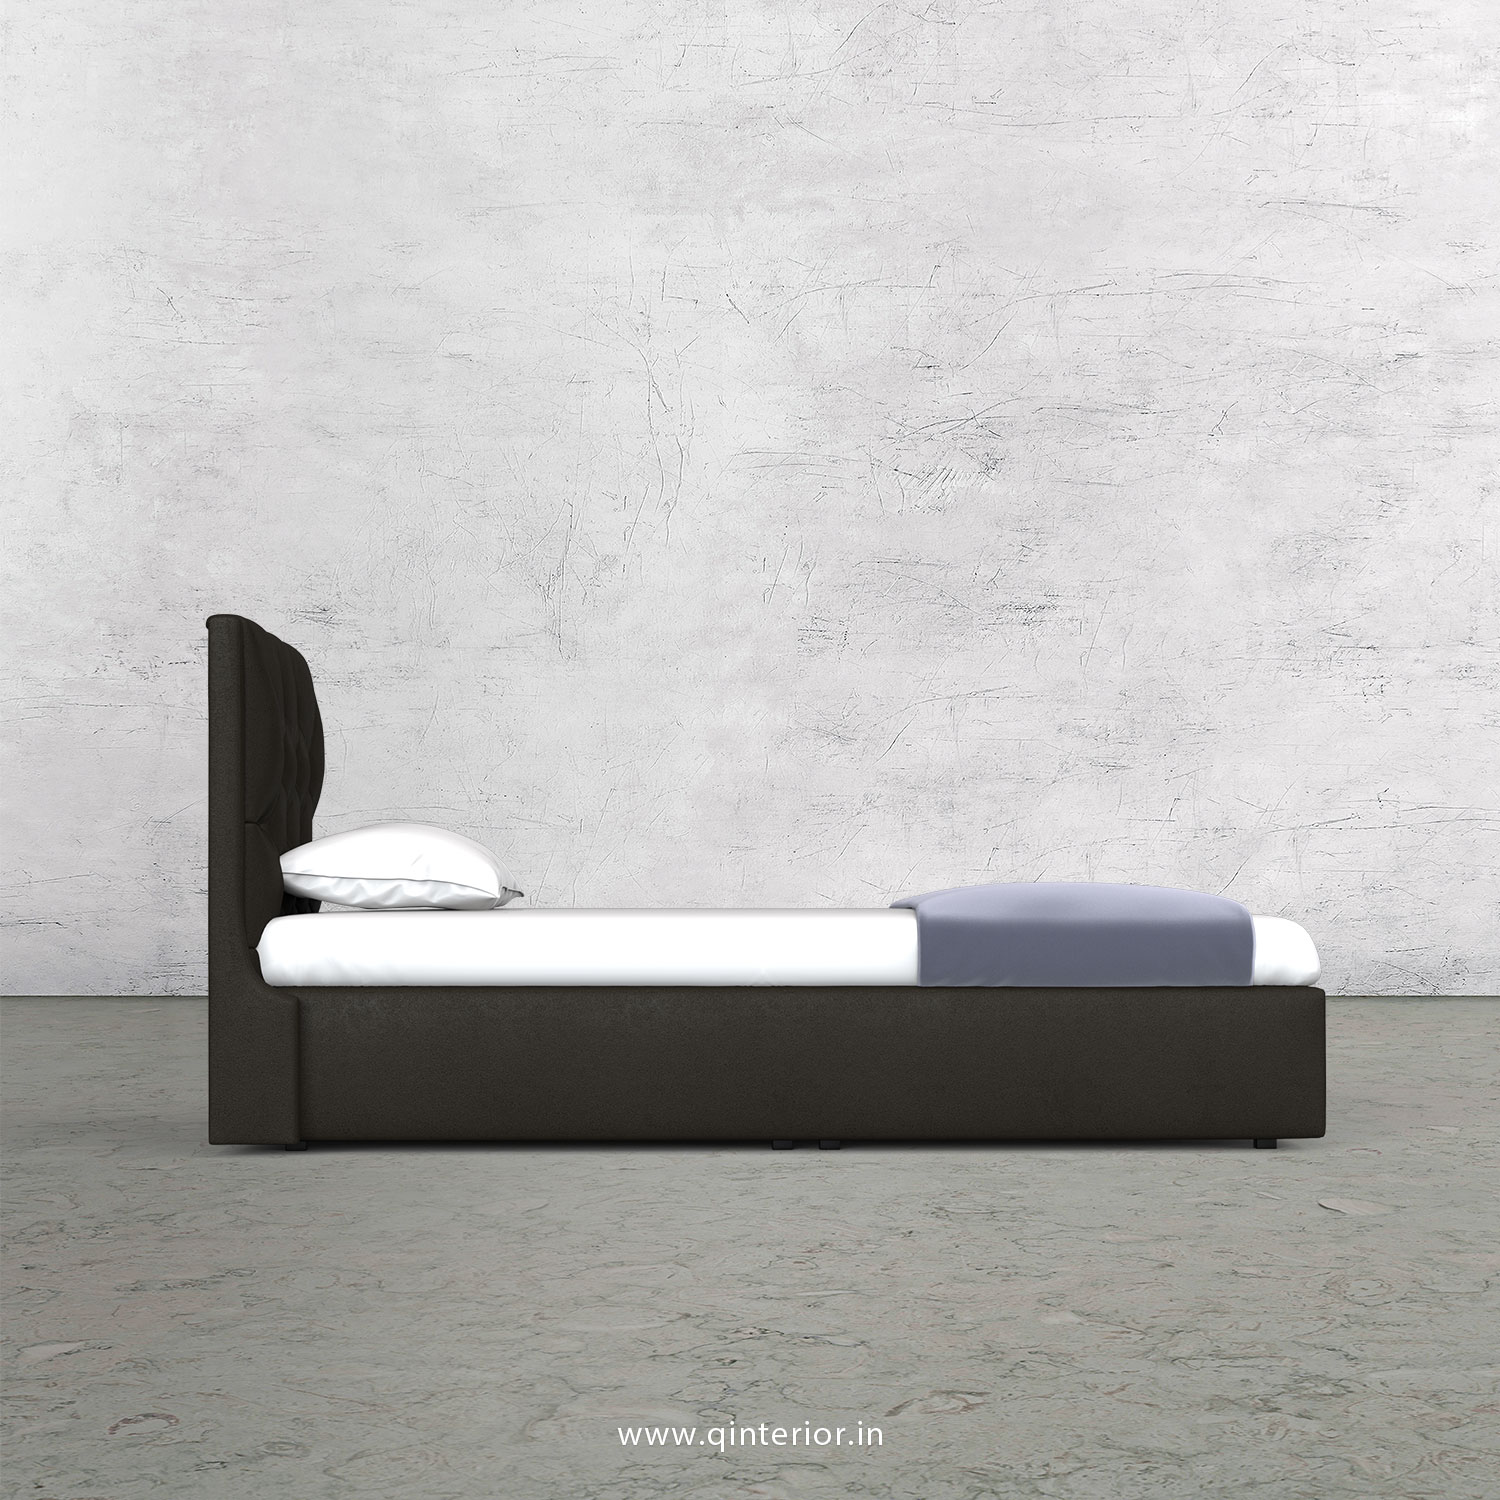 Scorpius Single Bed in Fab Leather Fabric - SBD009 FL11